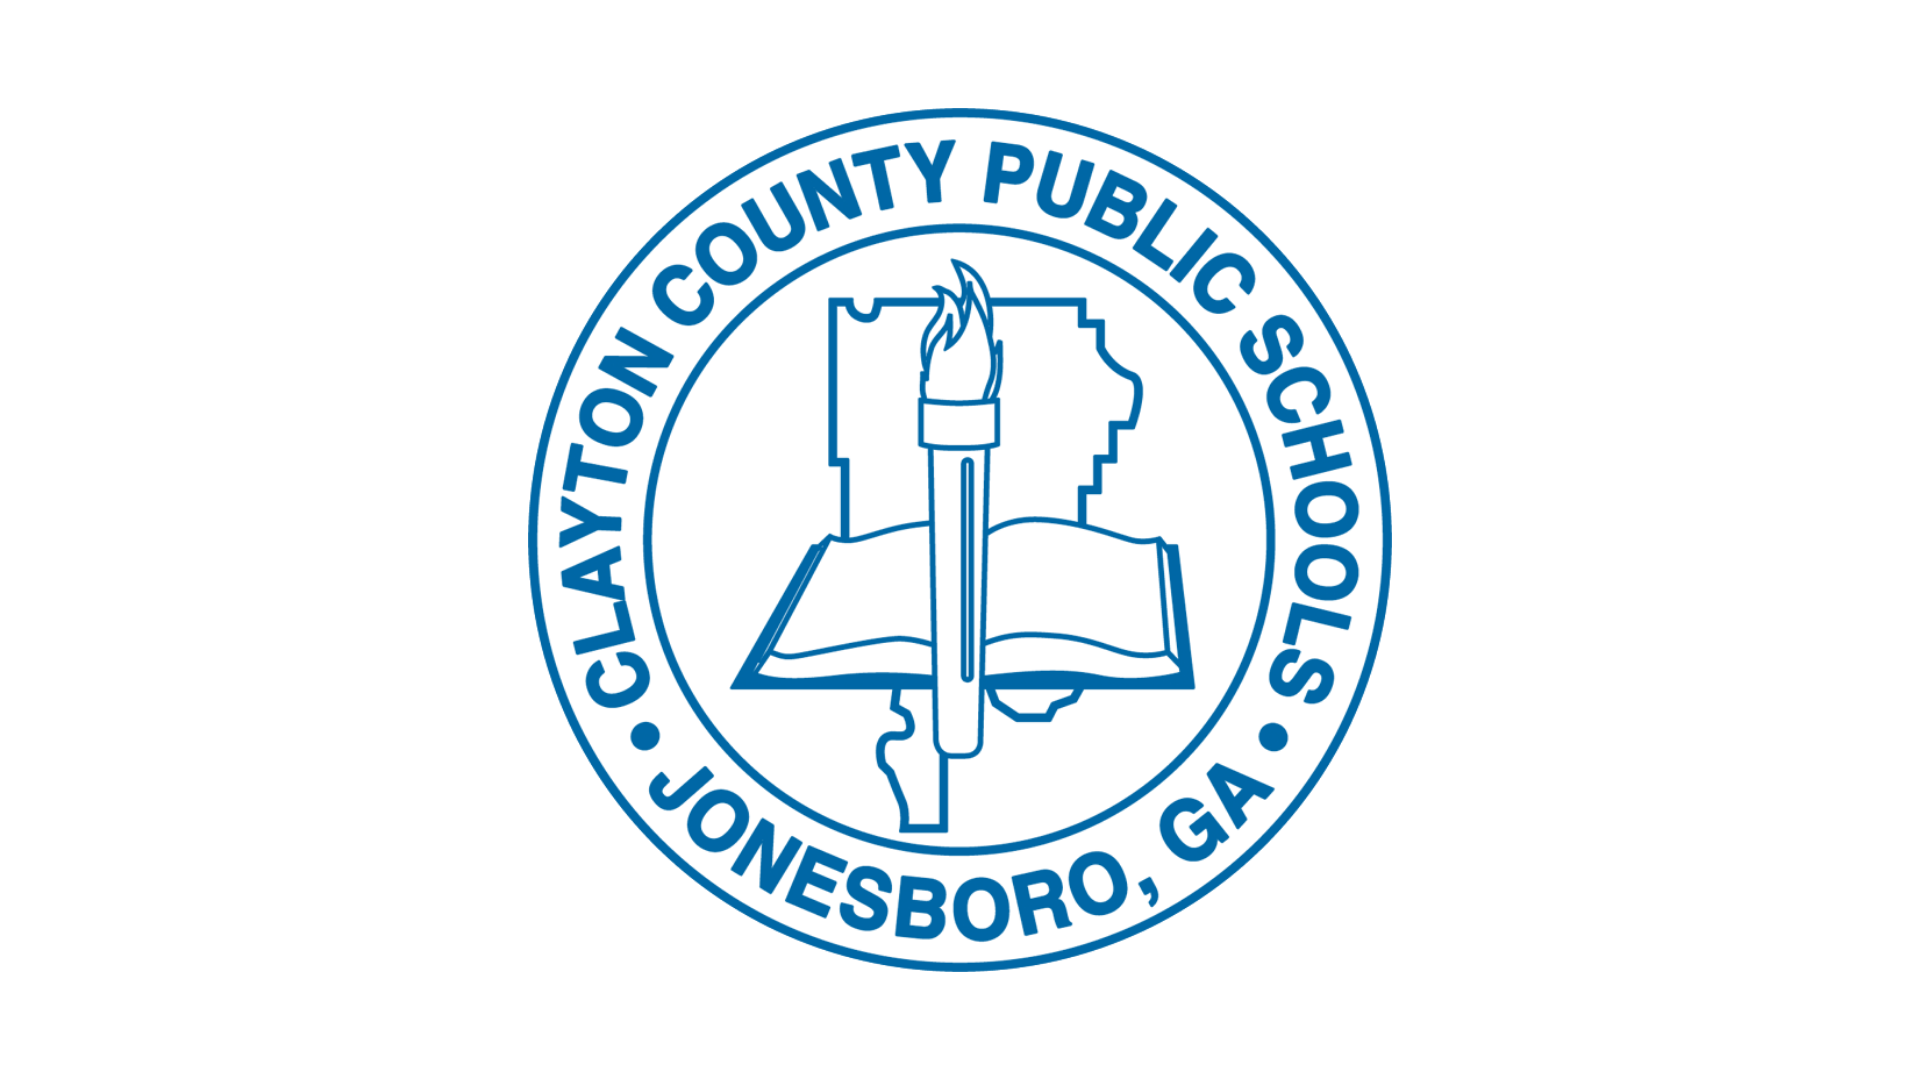 seal/logo of the Clayton County, GA Public Schools